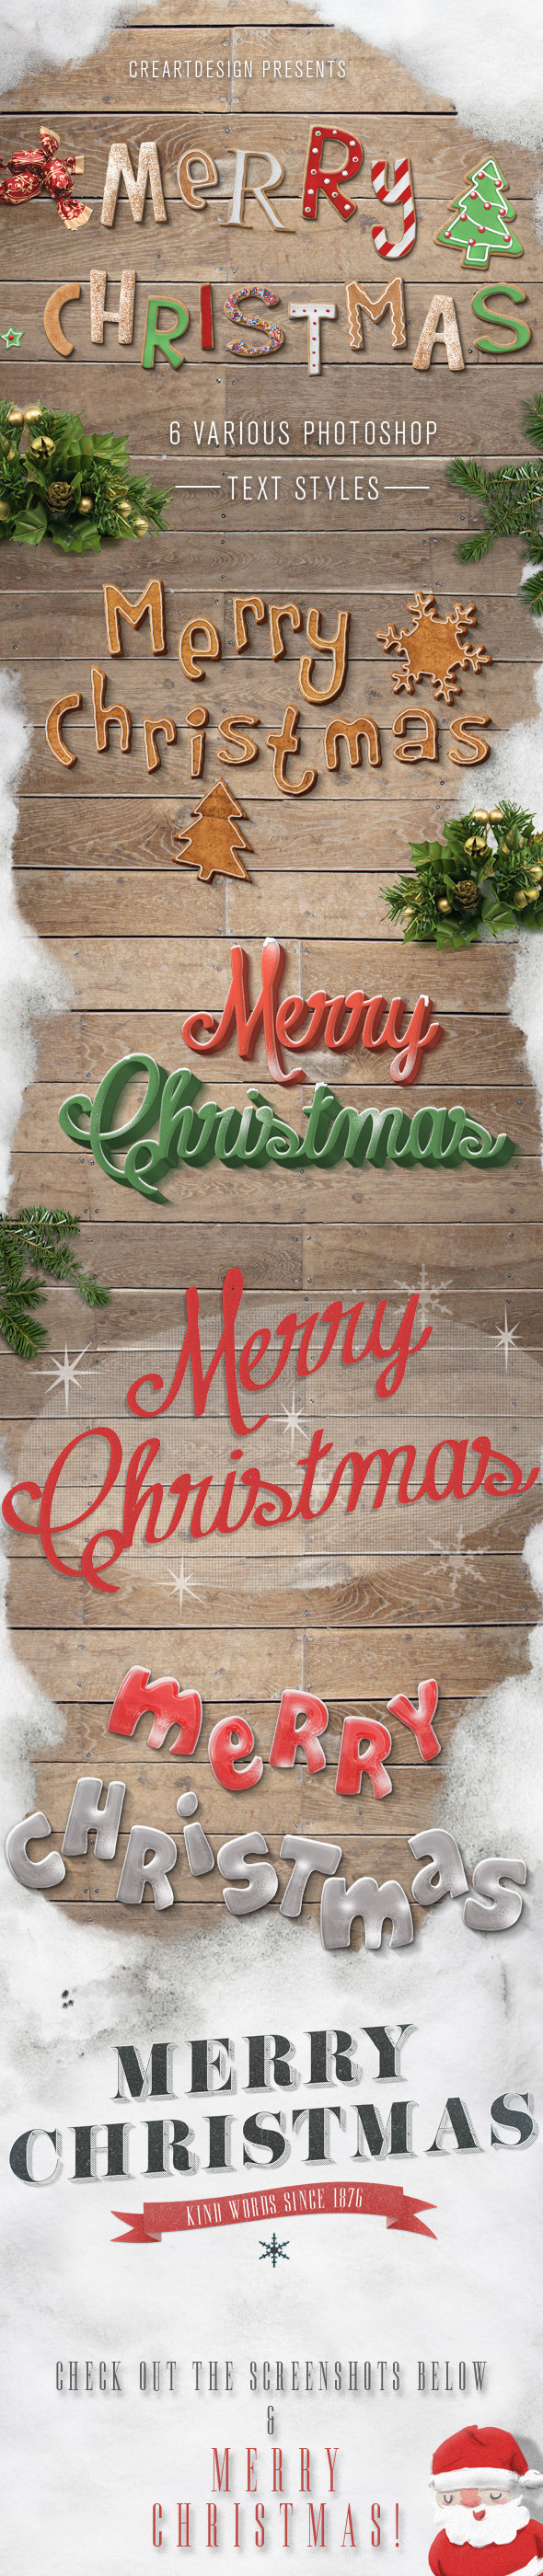 Christmas Text Effects And Styles for Photoshop - Text Effects Styles